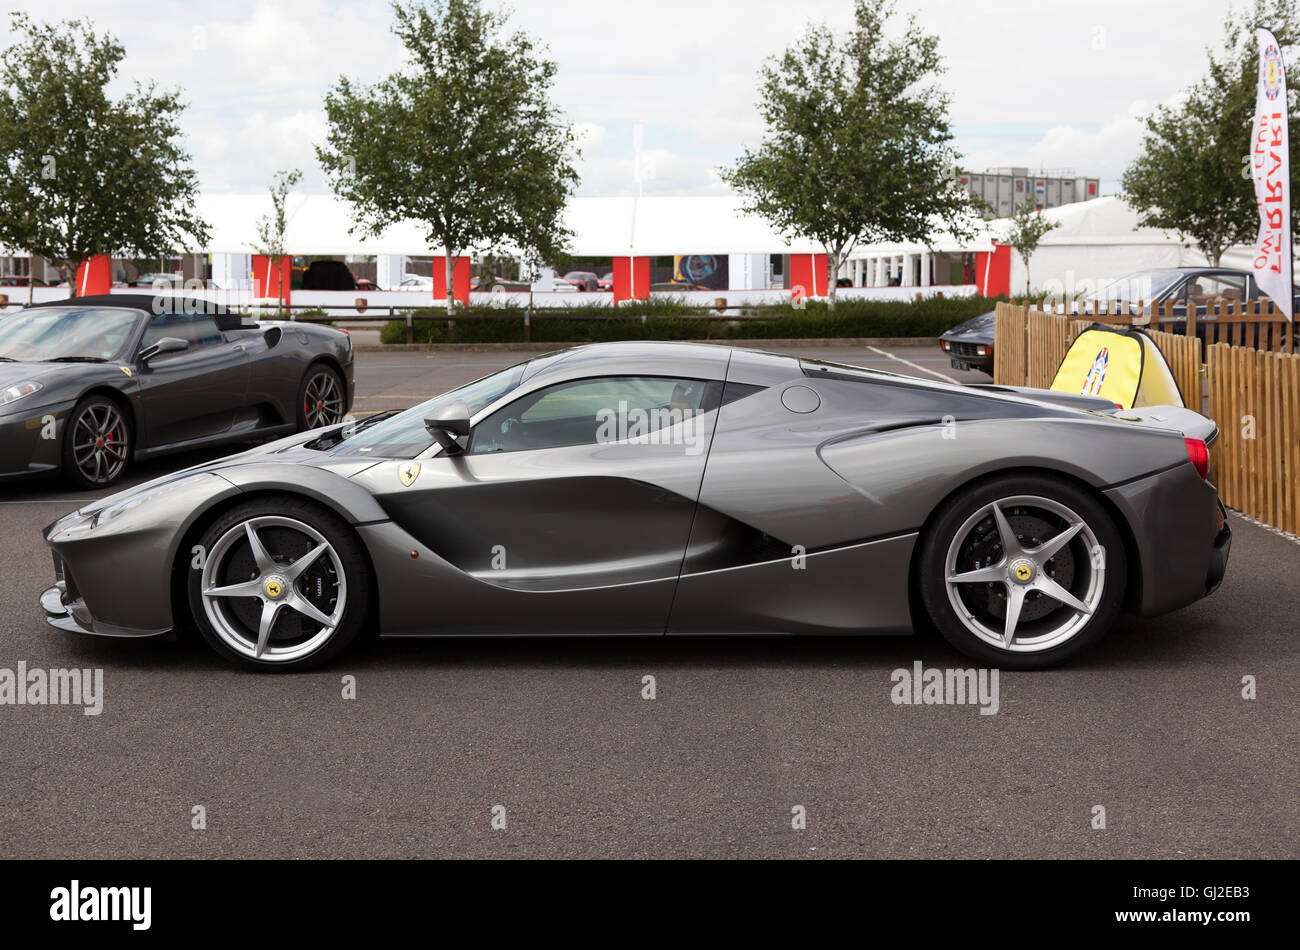 Side view of a LaFerrari, a hybrid sports car on display in the Ferrari Owners Club area of the Silverstone Classic - Stock Image